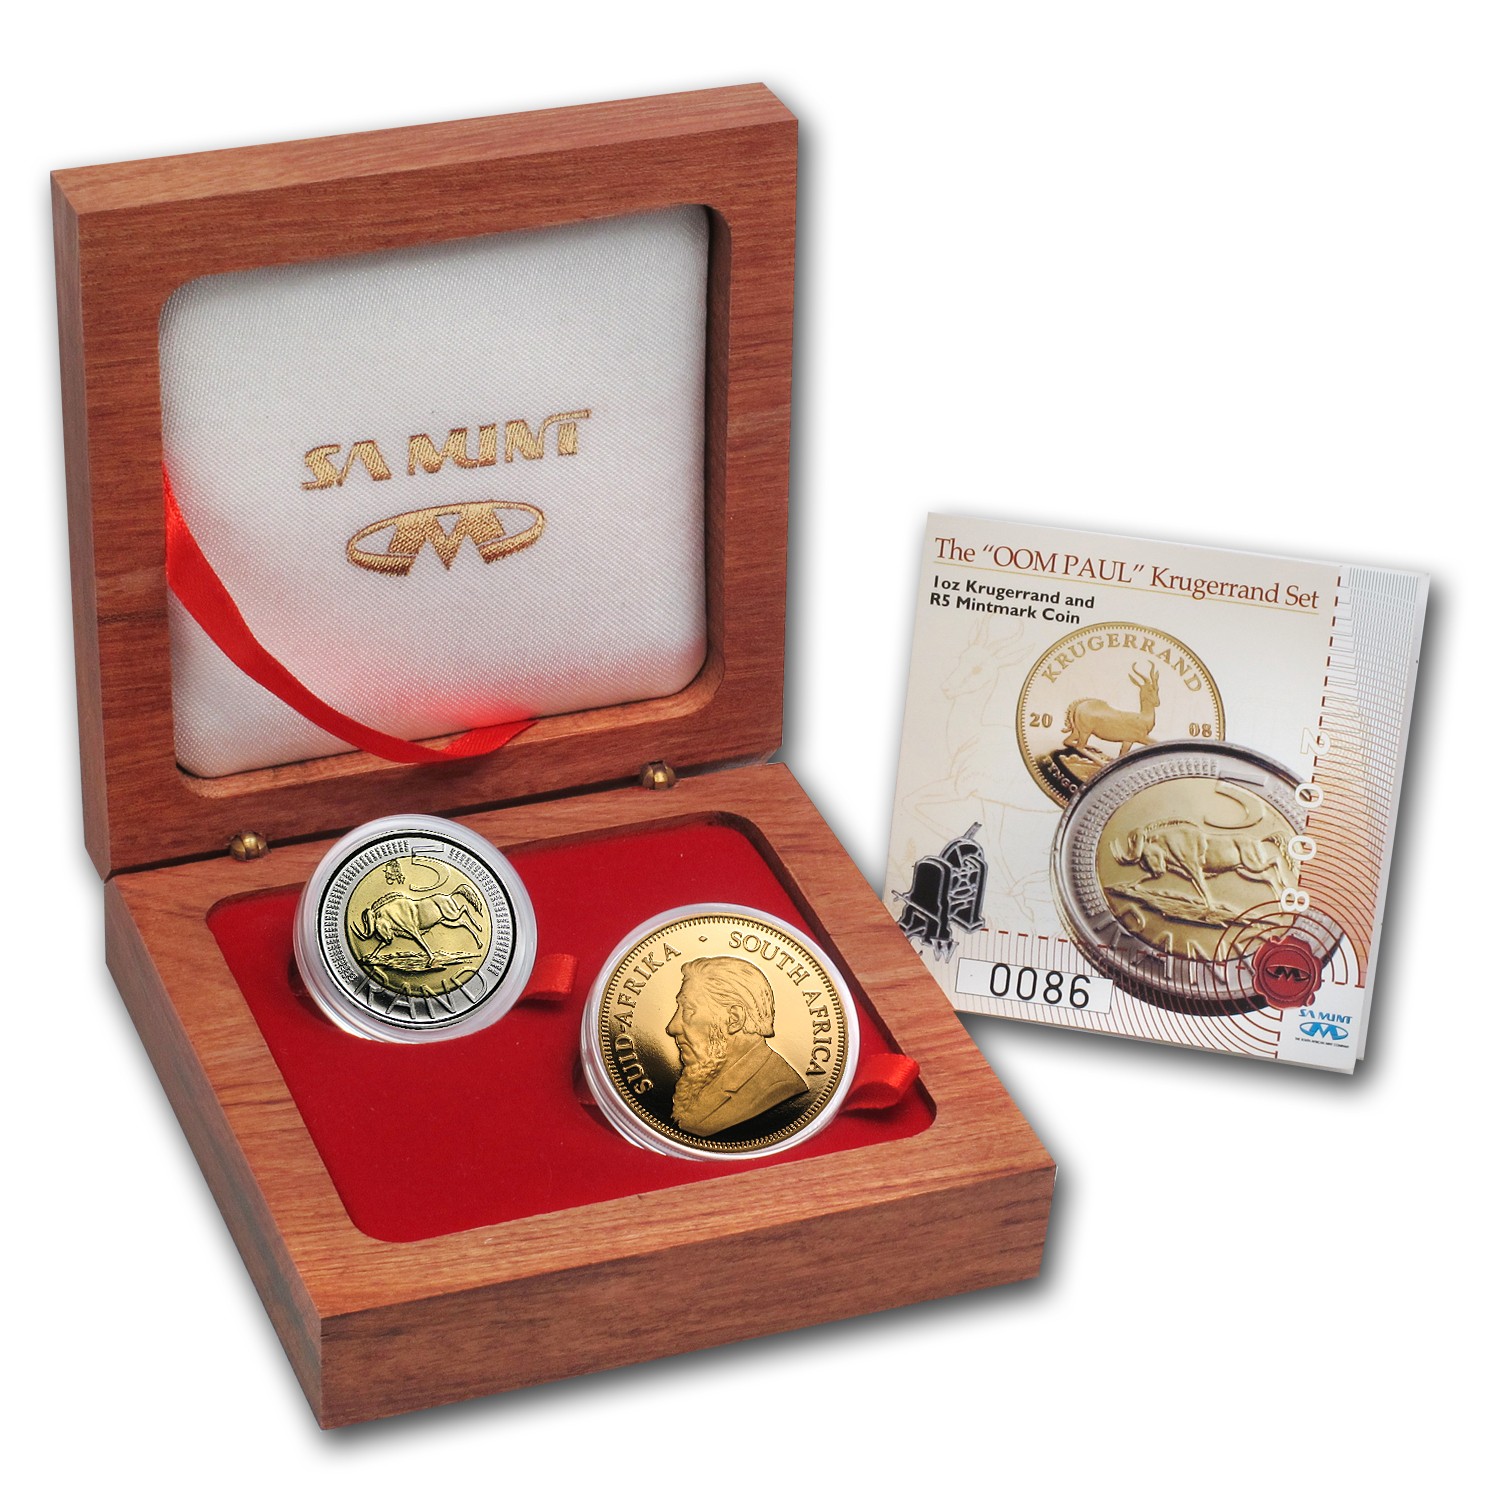 2008 2-Coin Gold South African Oom Paul Proof Set (w/Box & CoA)